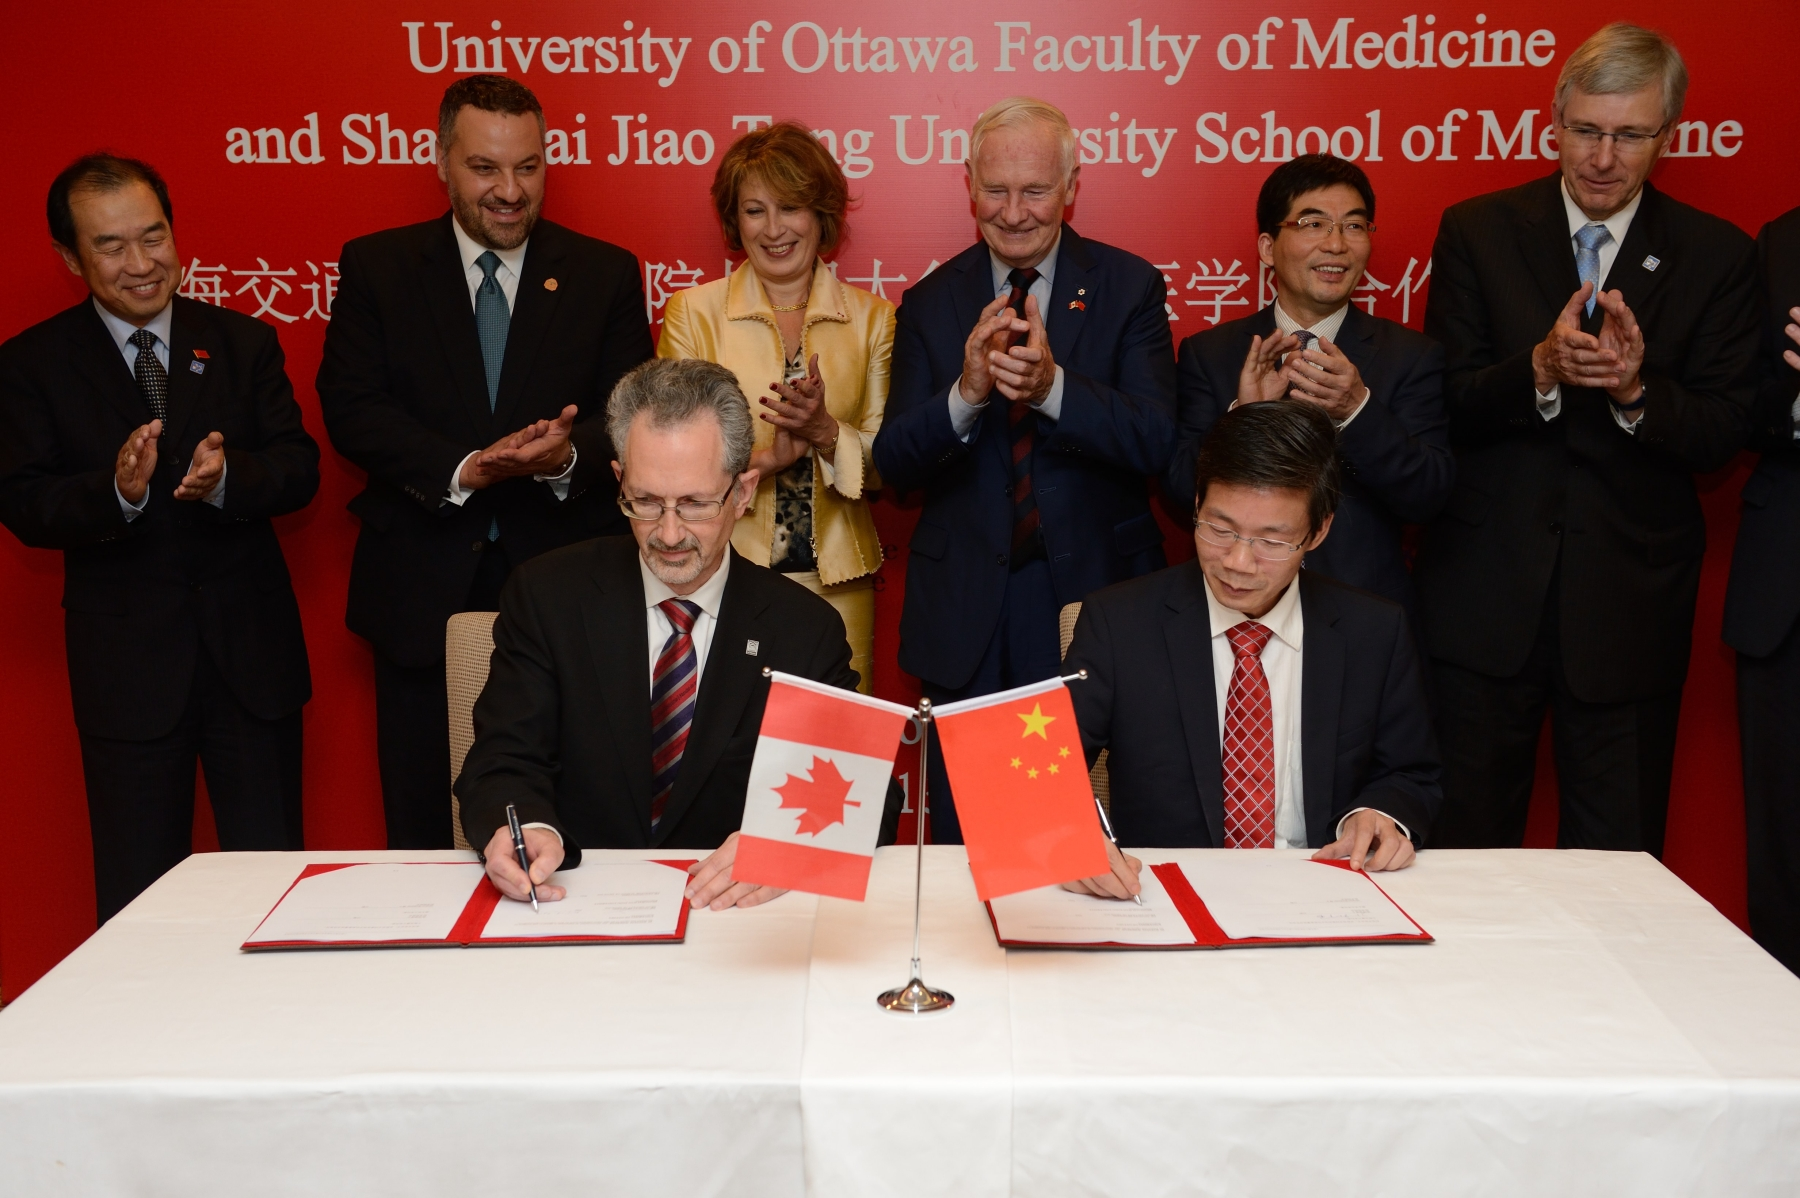 His Excellency witnessed the signing of an agreement between the University of Ottawa's Faculty of Medicine and the Shanghai Jiao Tong University School of Medicine, establishing a strategic partnership in medical education and training.